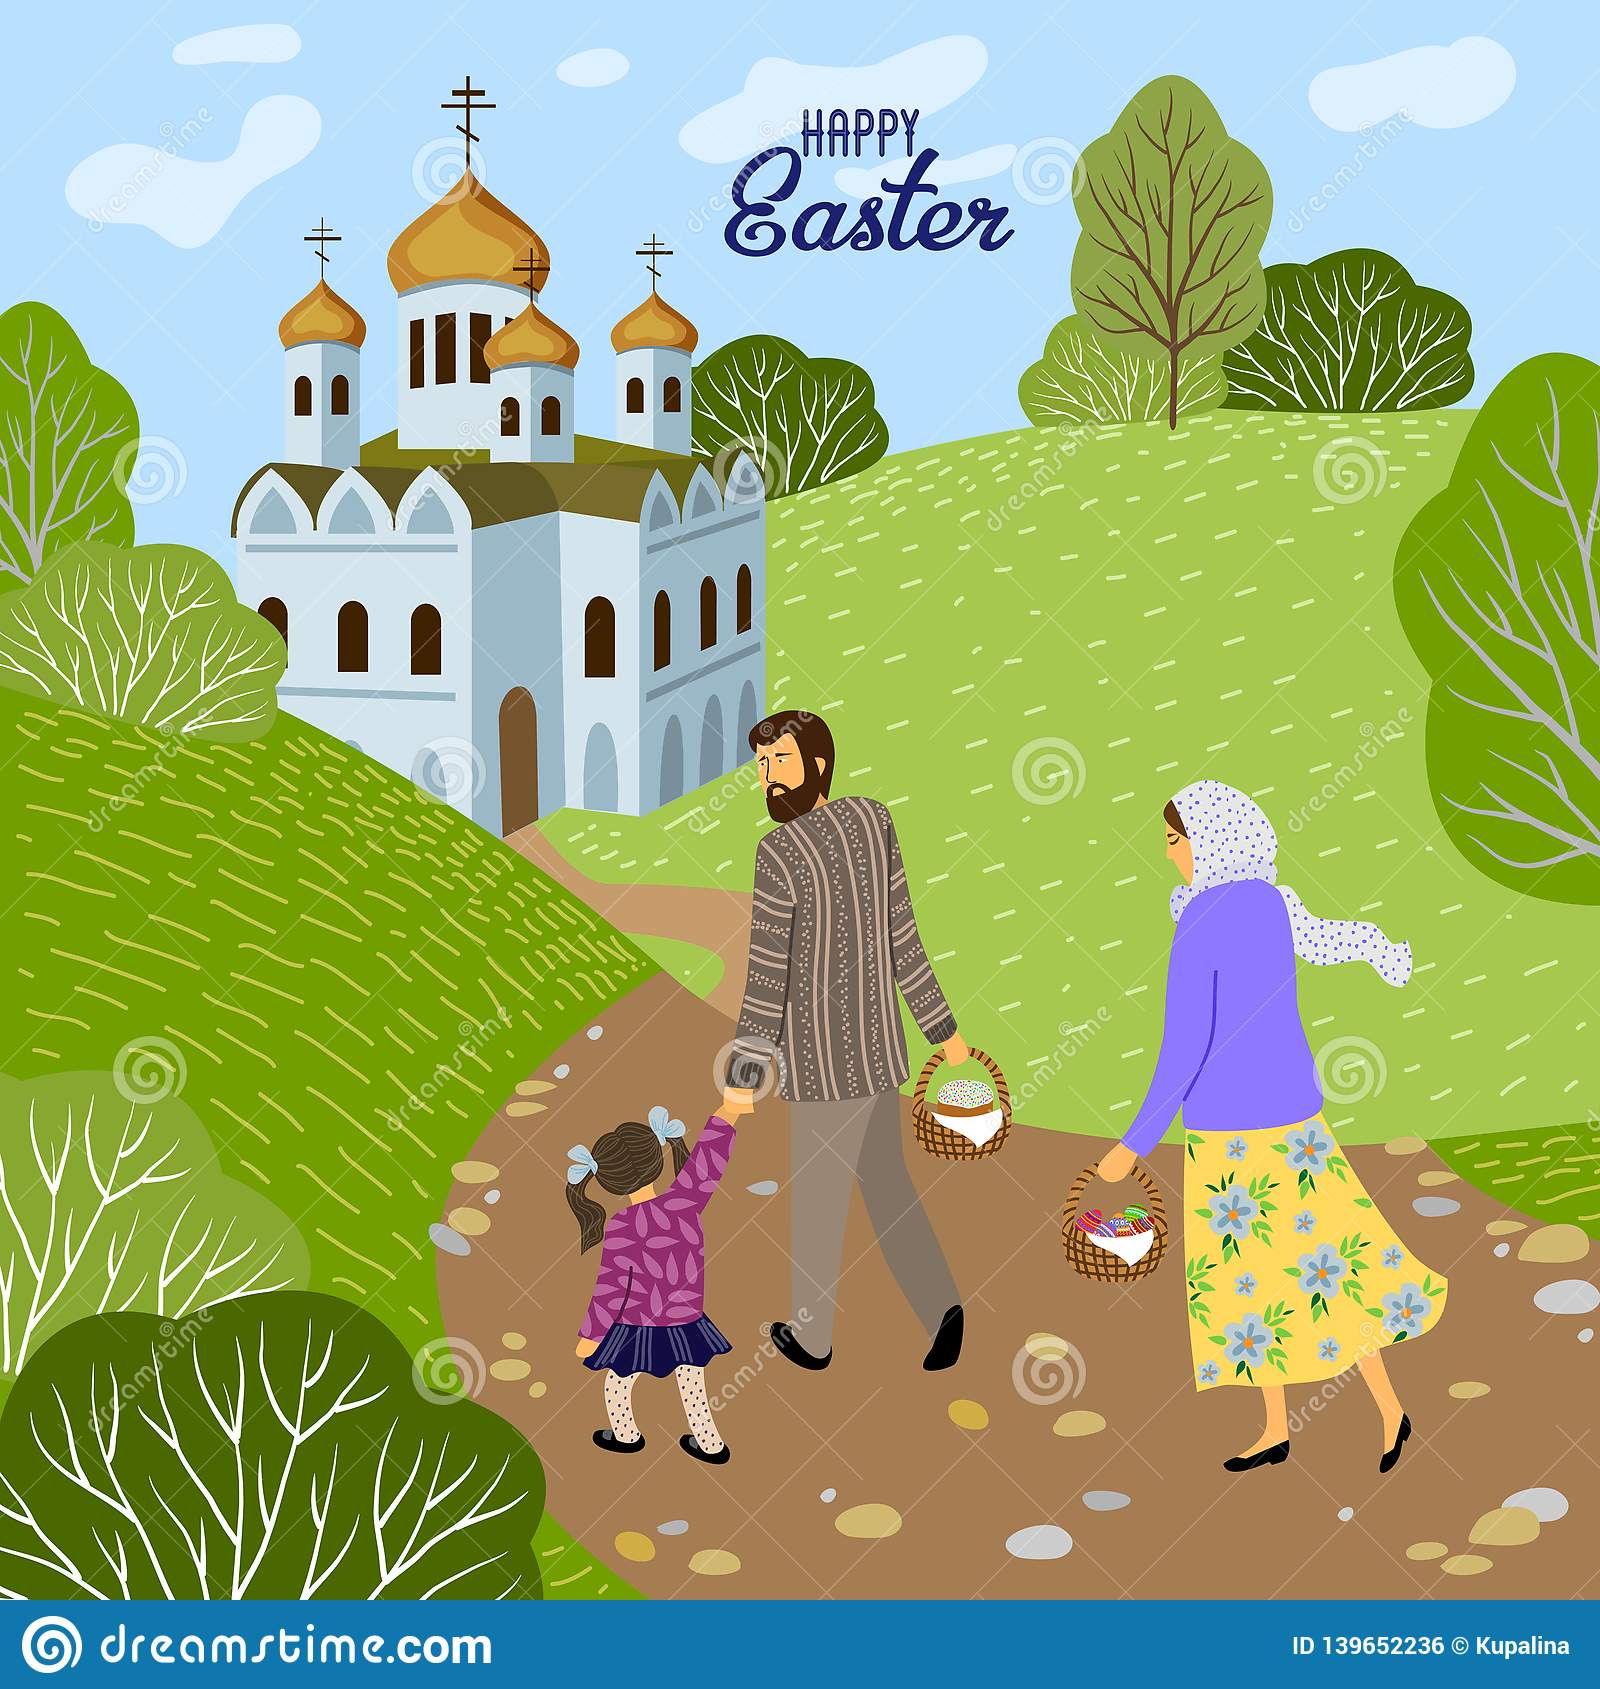 Happy Easter Family With A Child Going To An Orthodox Church To